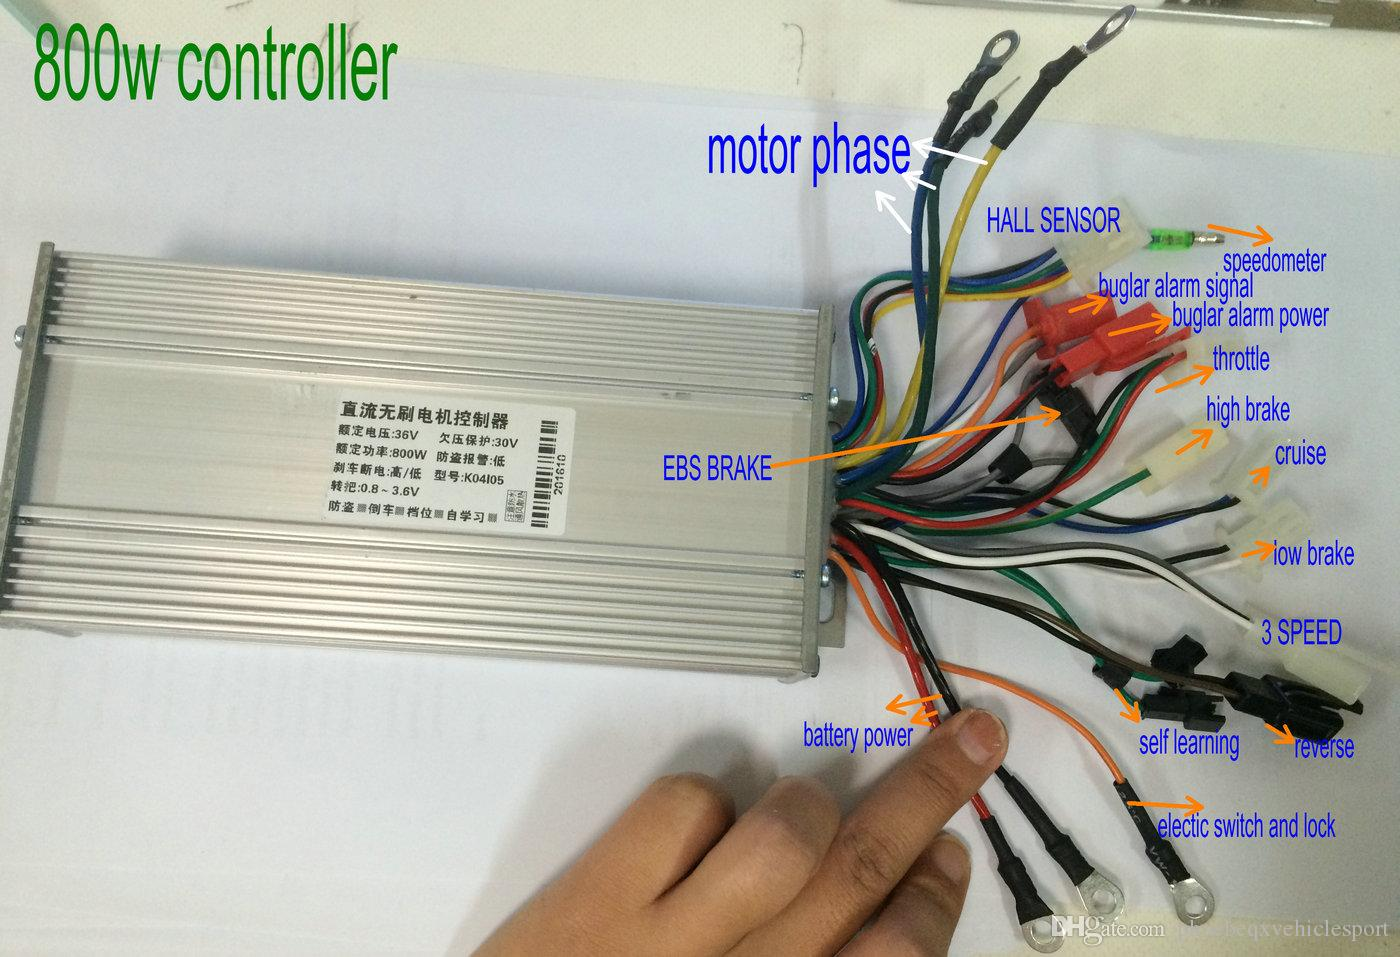 2018 36v48v60v64v800w1000w Bldc Motor Controller 15mosfet With Ebs Trike Wiring Diagram 3speed Reverse For Electric Scooter Bike Tricycle Pedicab Pedal From